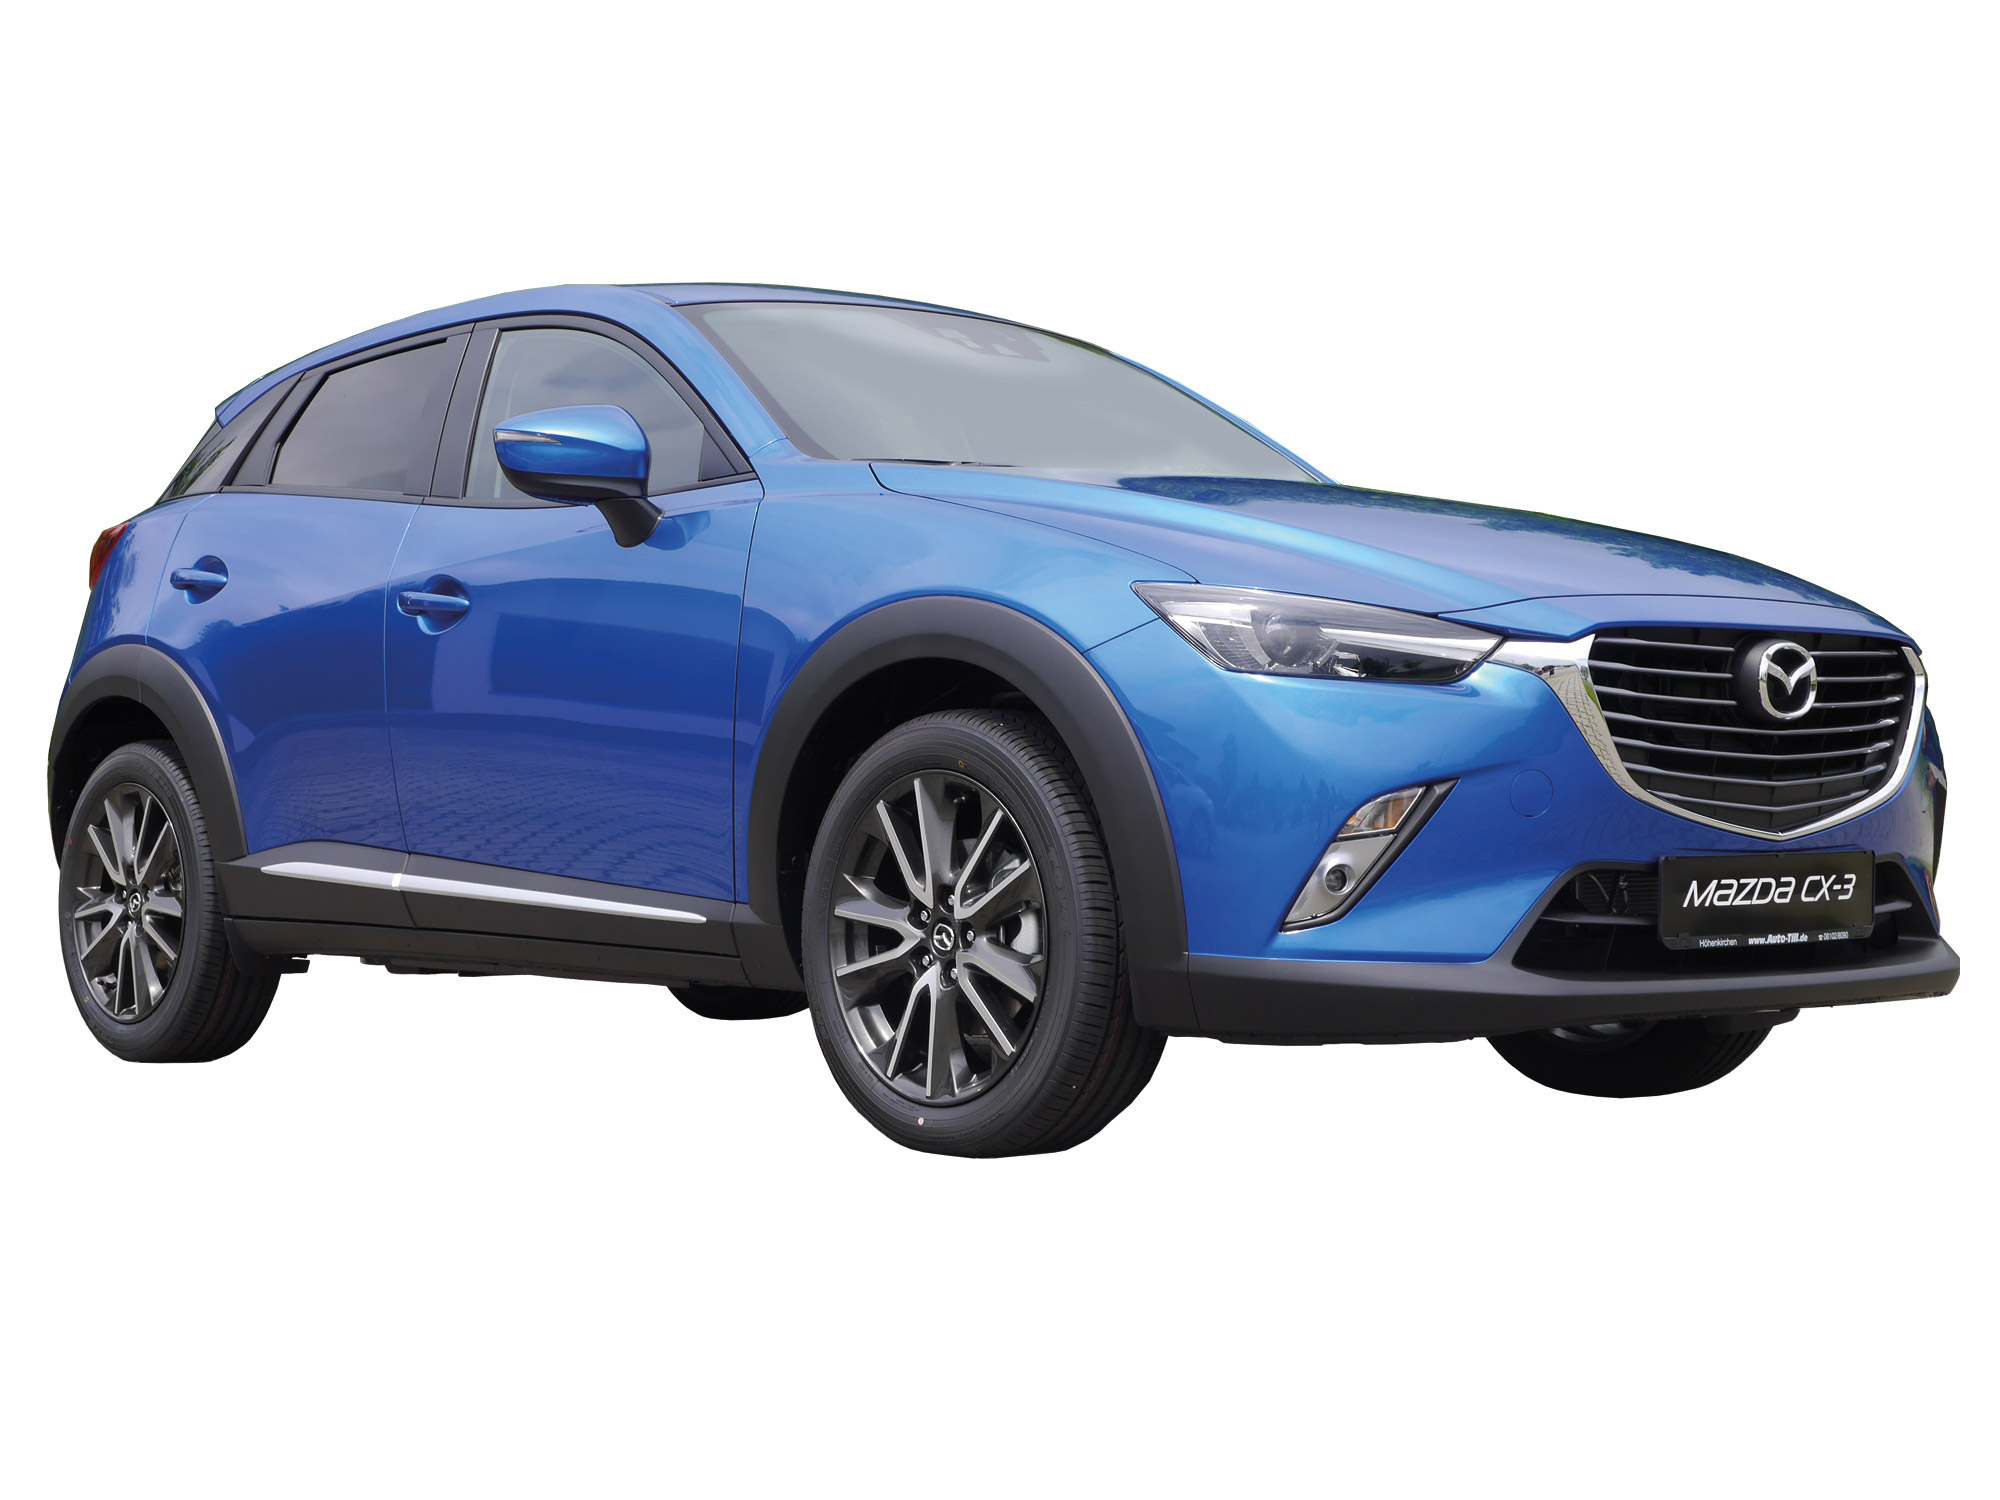 mazda cx 3 2018 kaufen m nchen mazda autohaus till. Black Bedroom Furniture Sets. Home Design Ideas